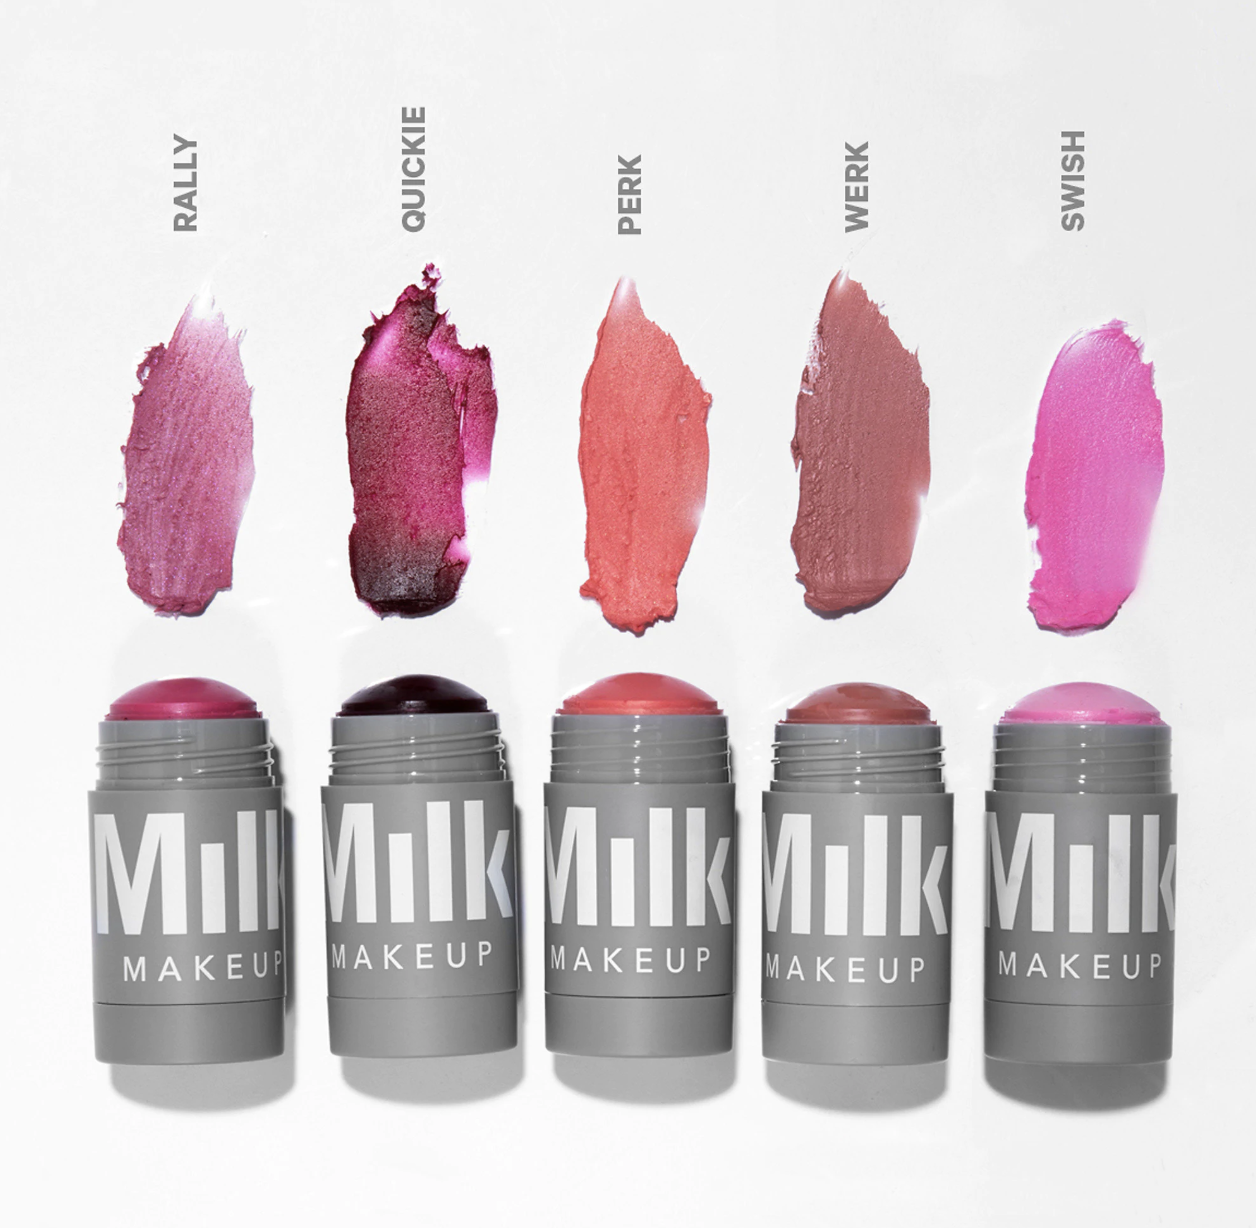 Five small tubes of the tint lined up next to each other with swatches above them. The shades include a light plum, deep cranberry, a pink peach, a brownish mauve, and a brighter pink color